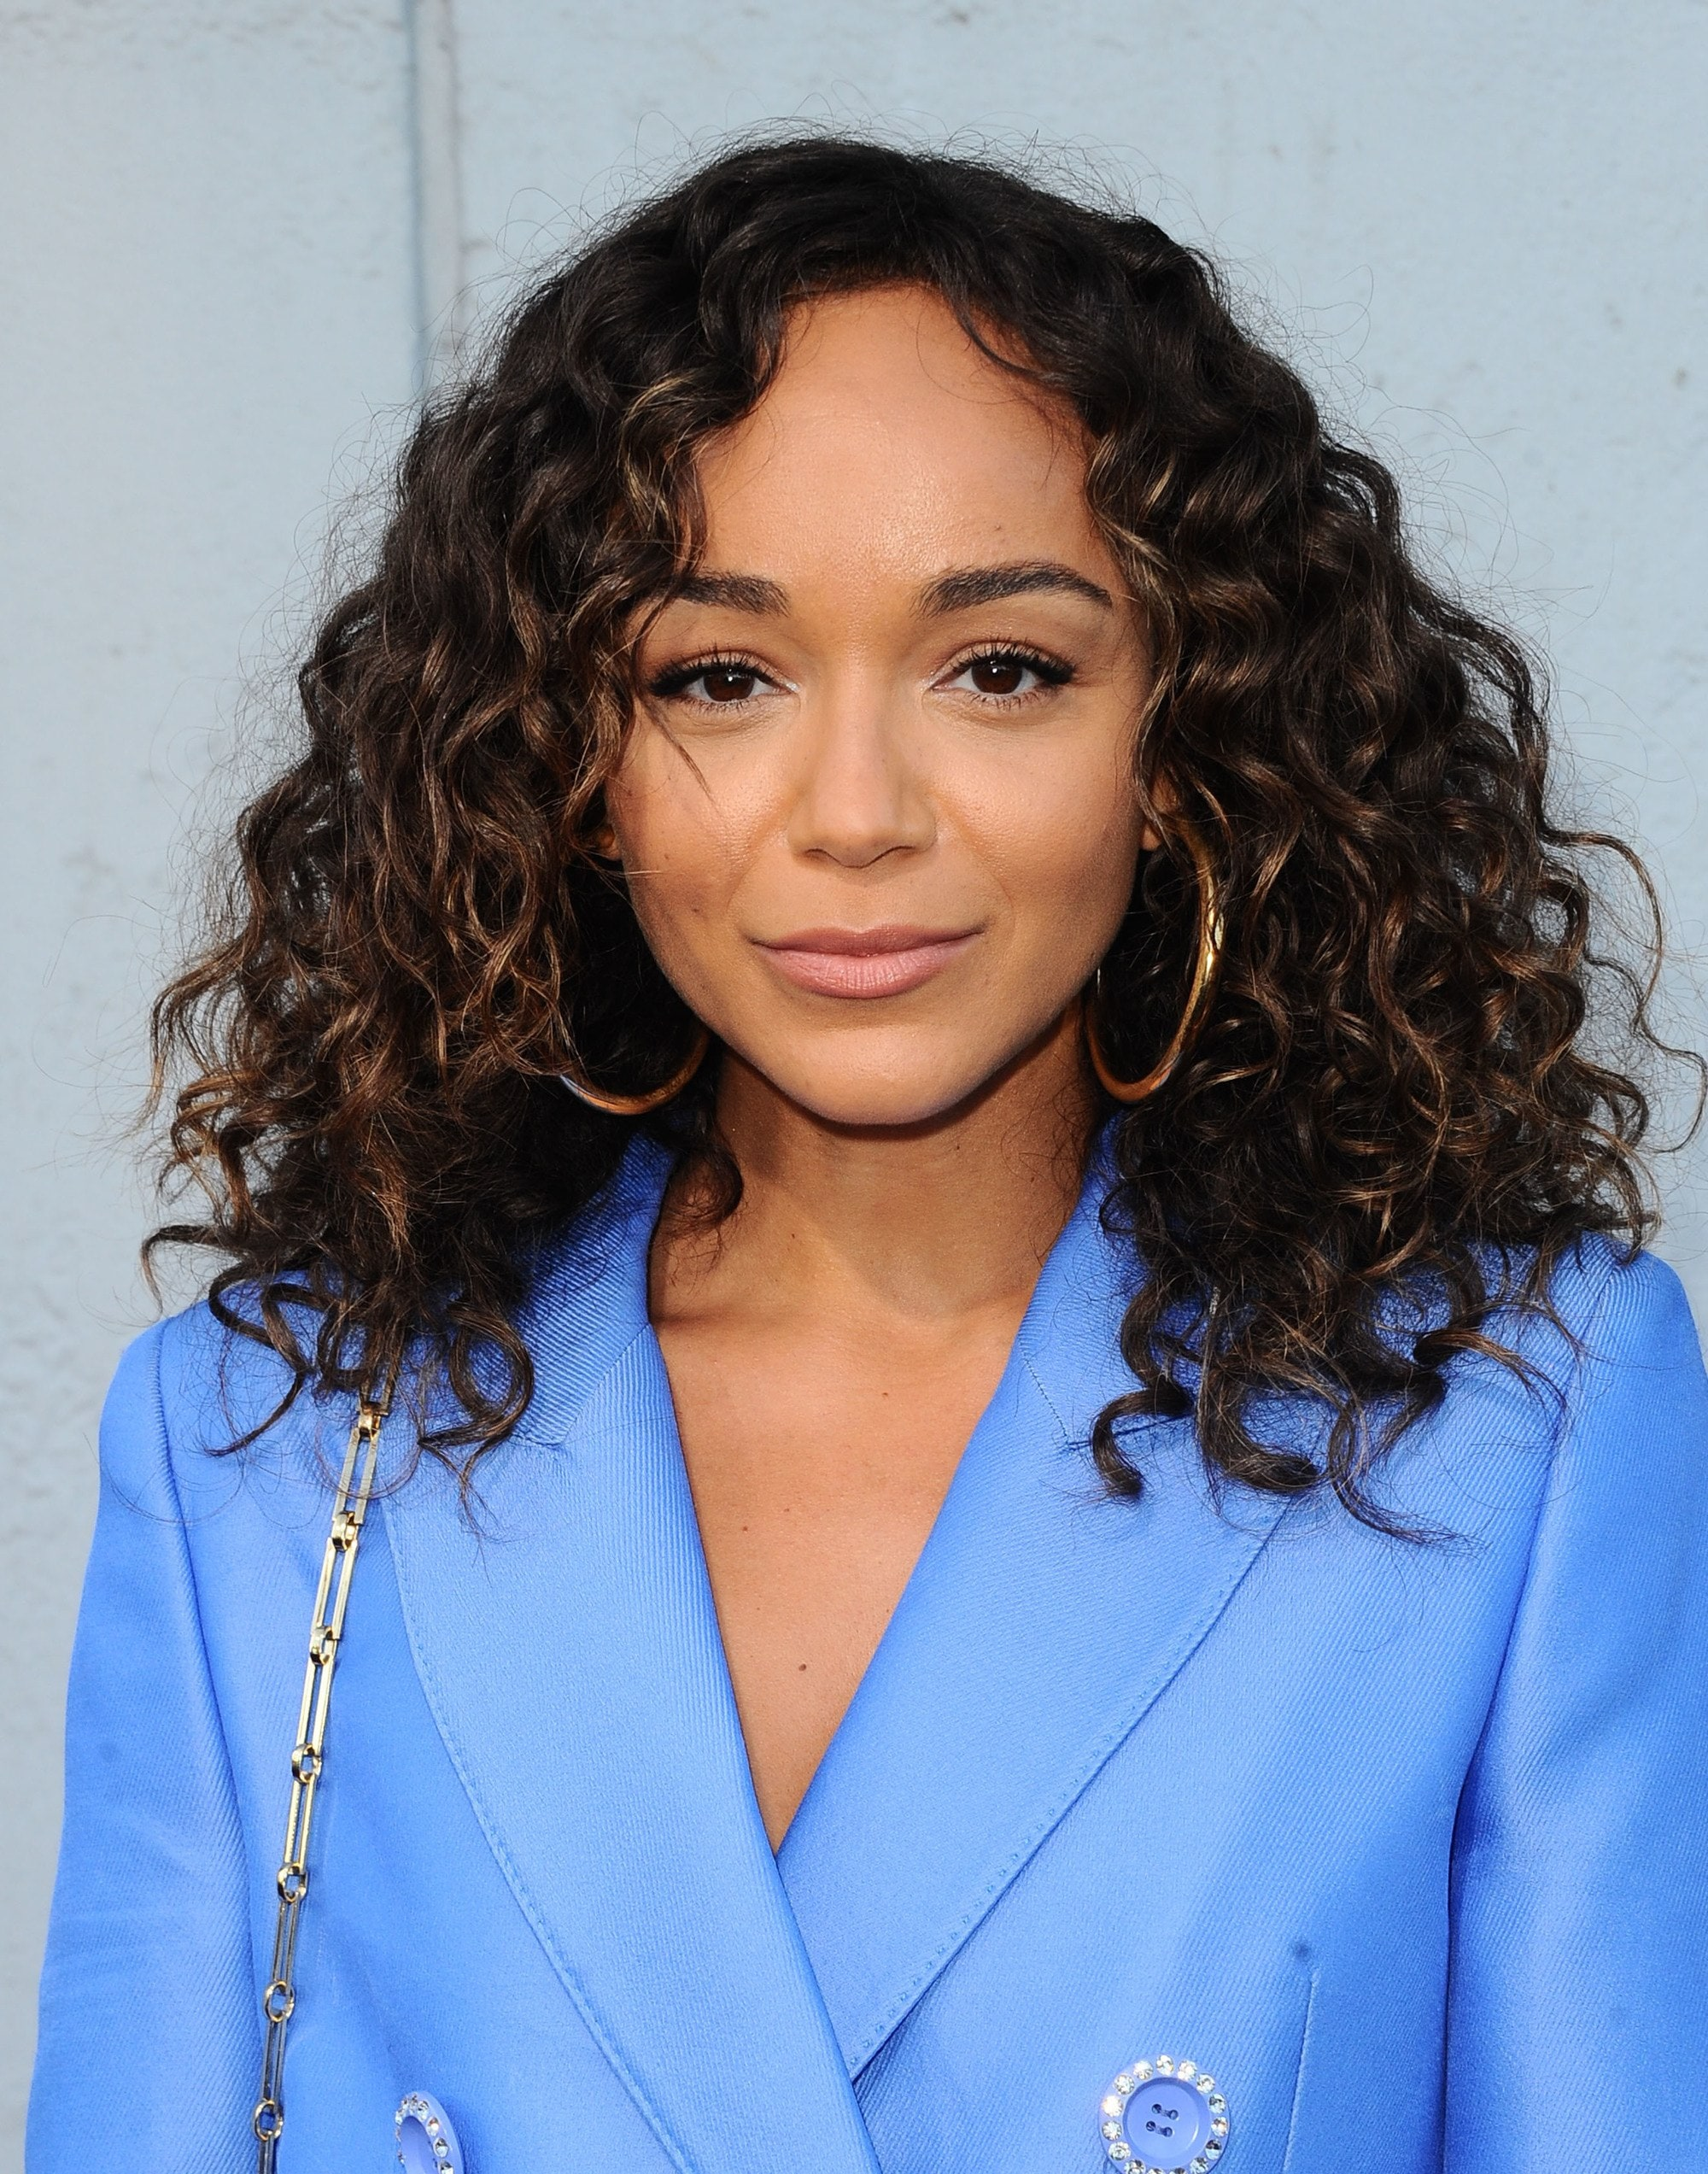 hairstyles for fine curly hair: actress ashley madekwe with a shoulder length curly bob wearing a blue blazer